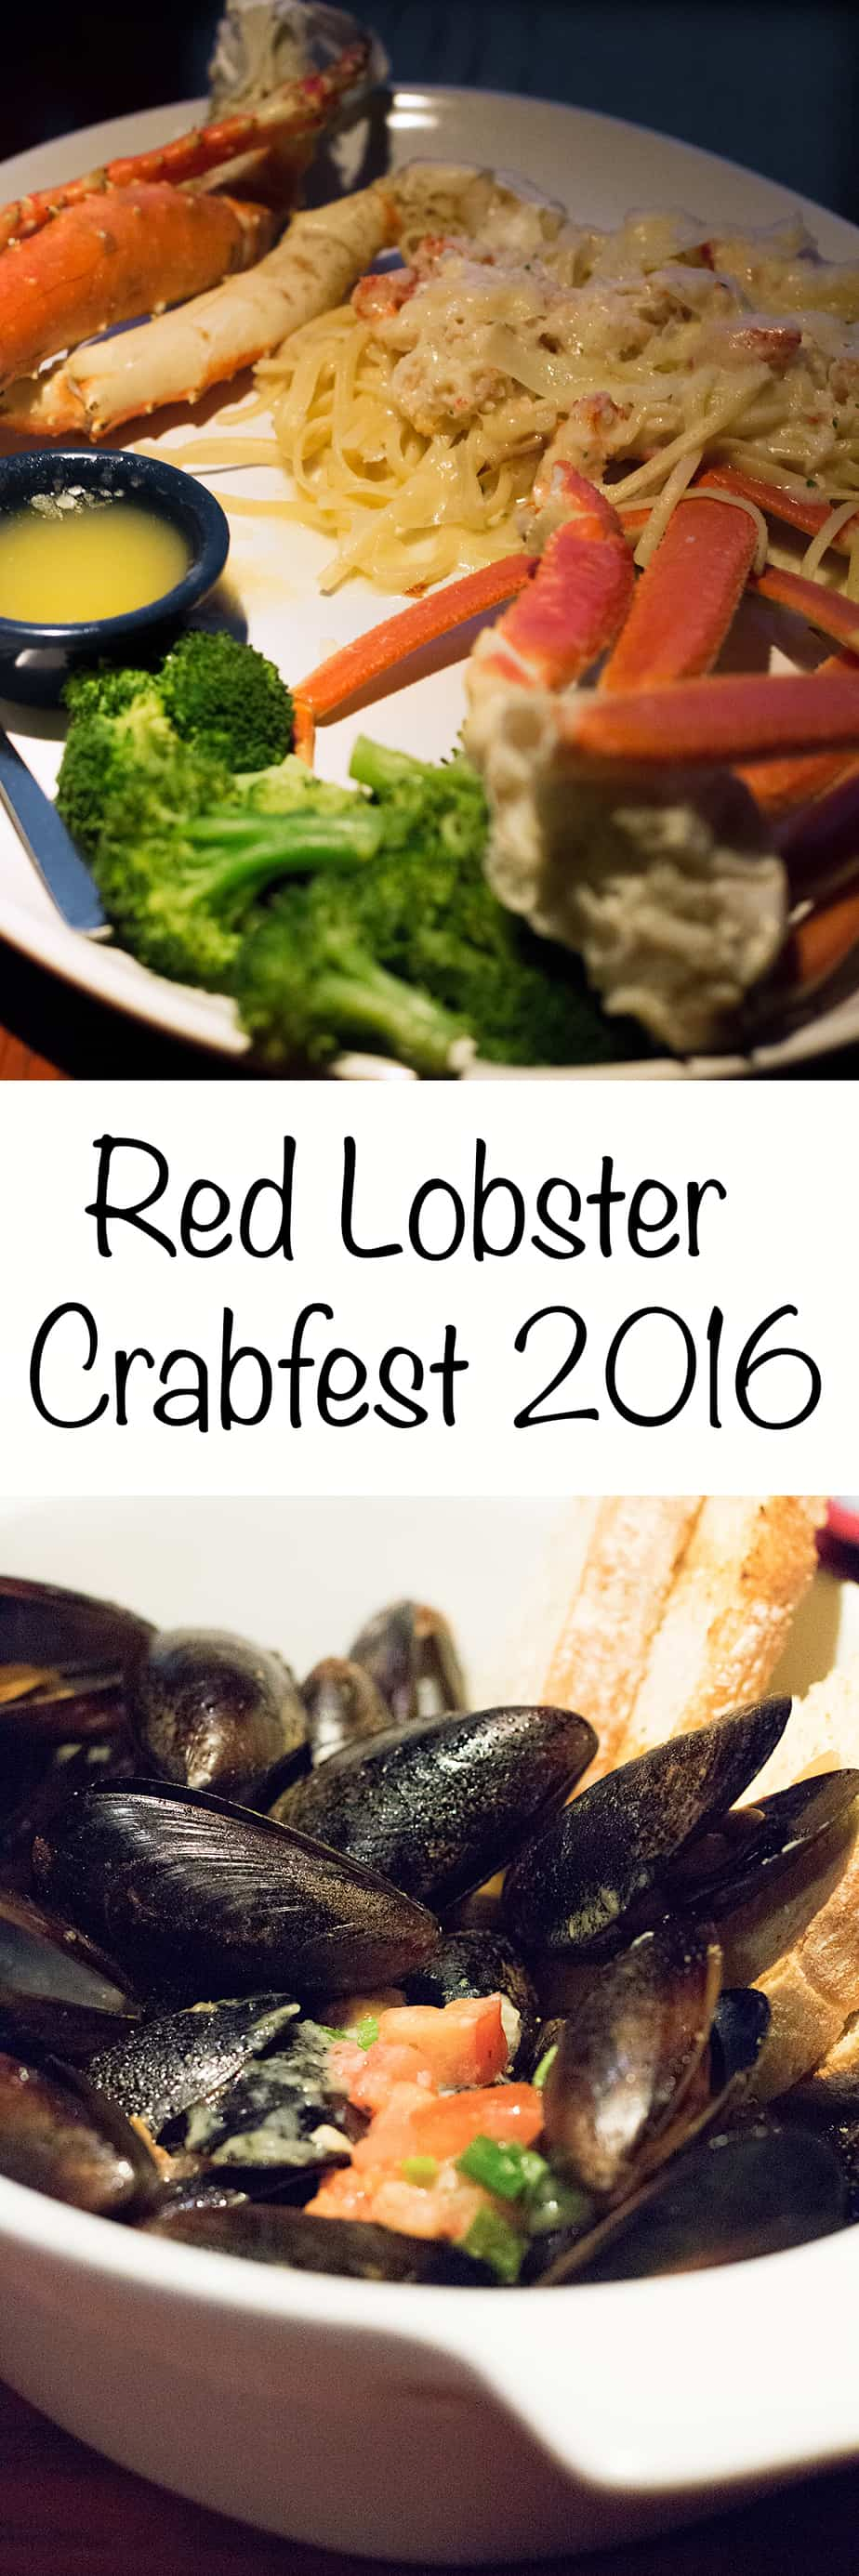 Red Lobster Crabfest 2016